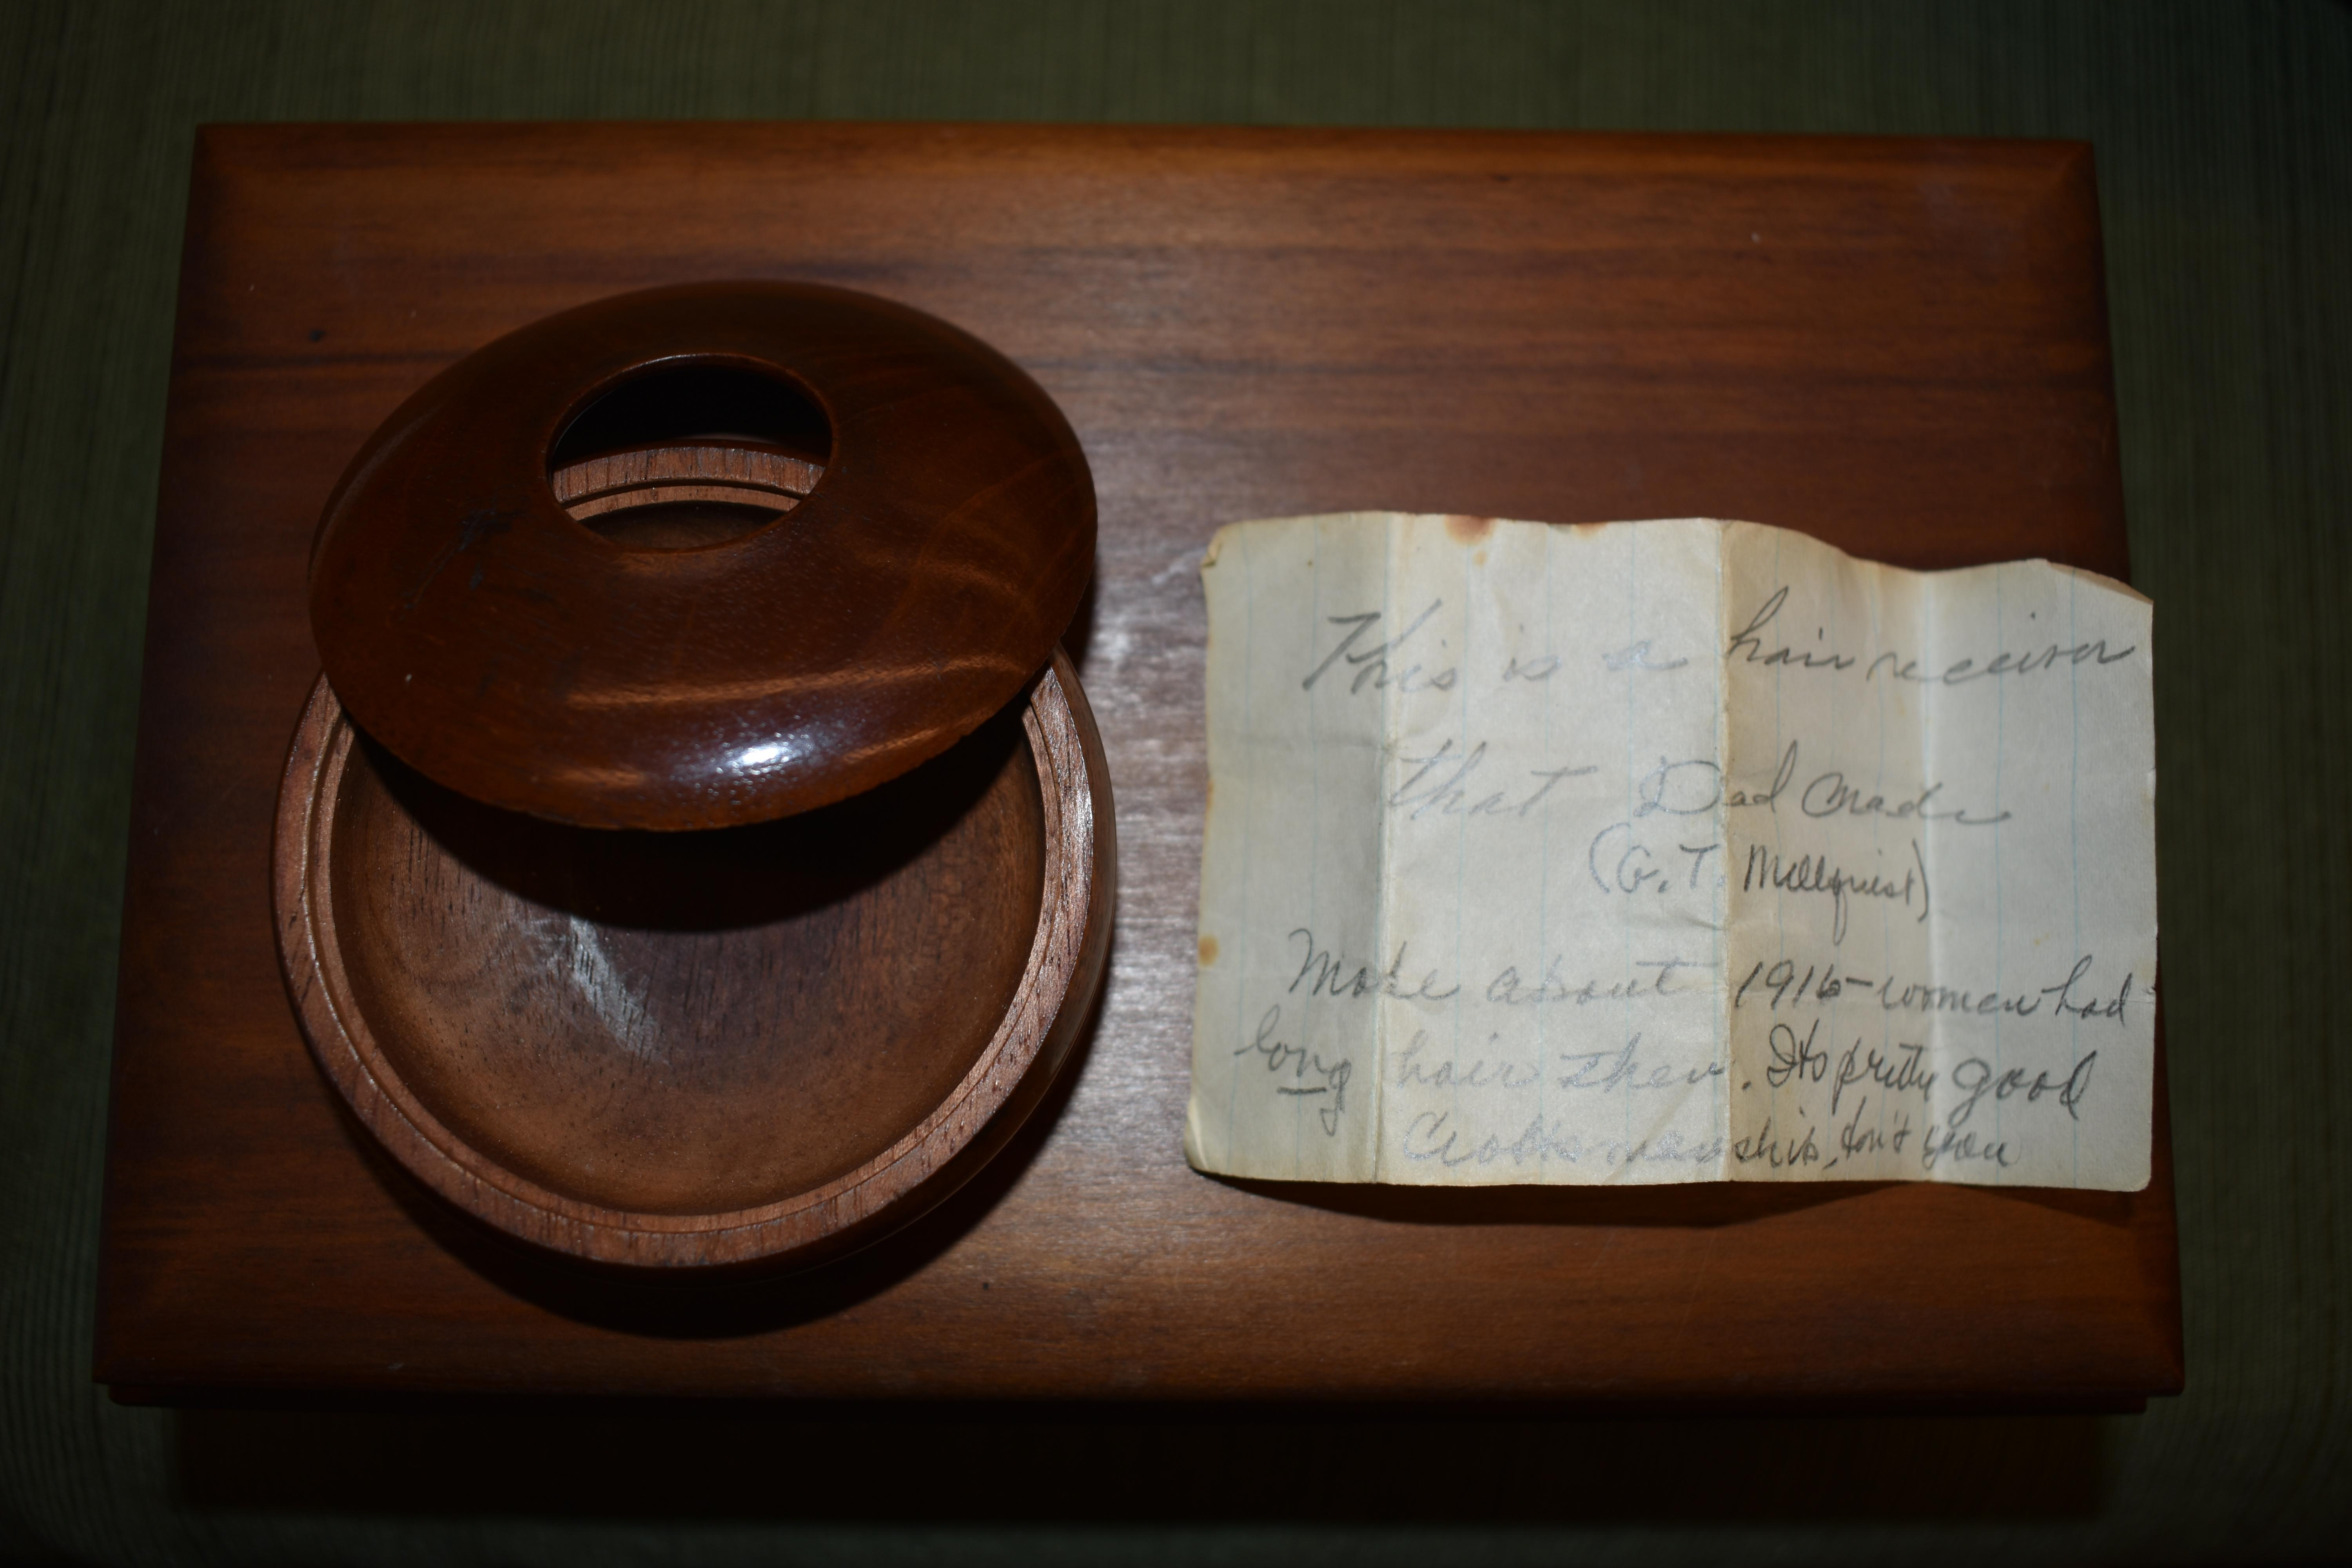 A hair receiving bowl made by Gustav Mellquist about 1916; women would save their hair and press the strands through the opening in the top piece. The note was written by Gustav's daughter, Enid who was Ray Barry's mother. Photo by Maureen Flanagan Battistella